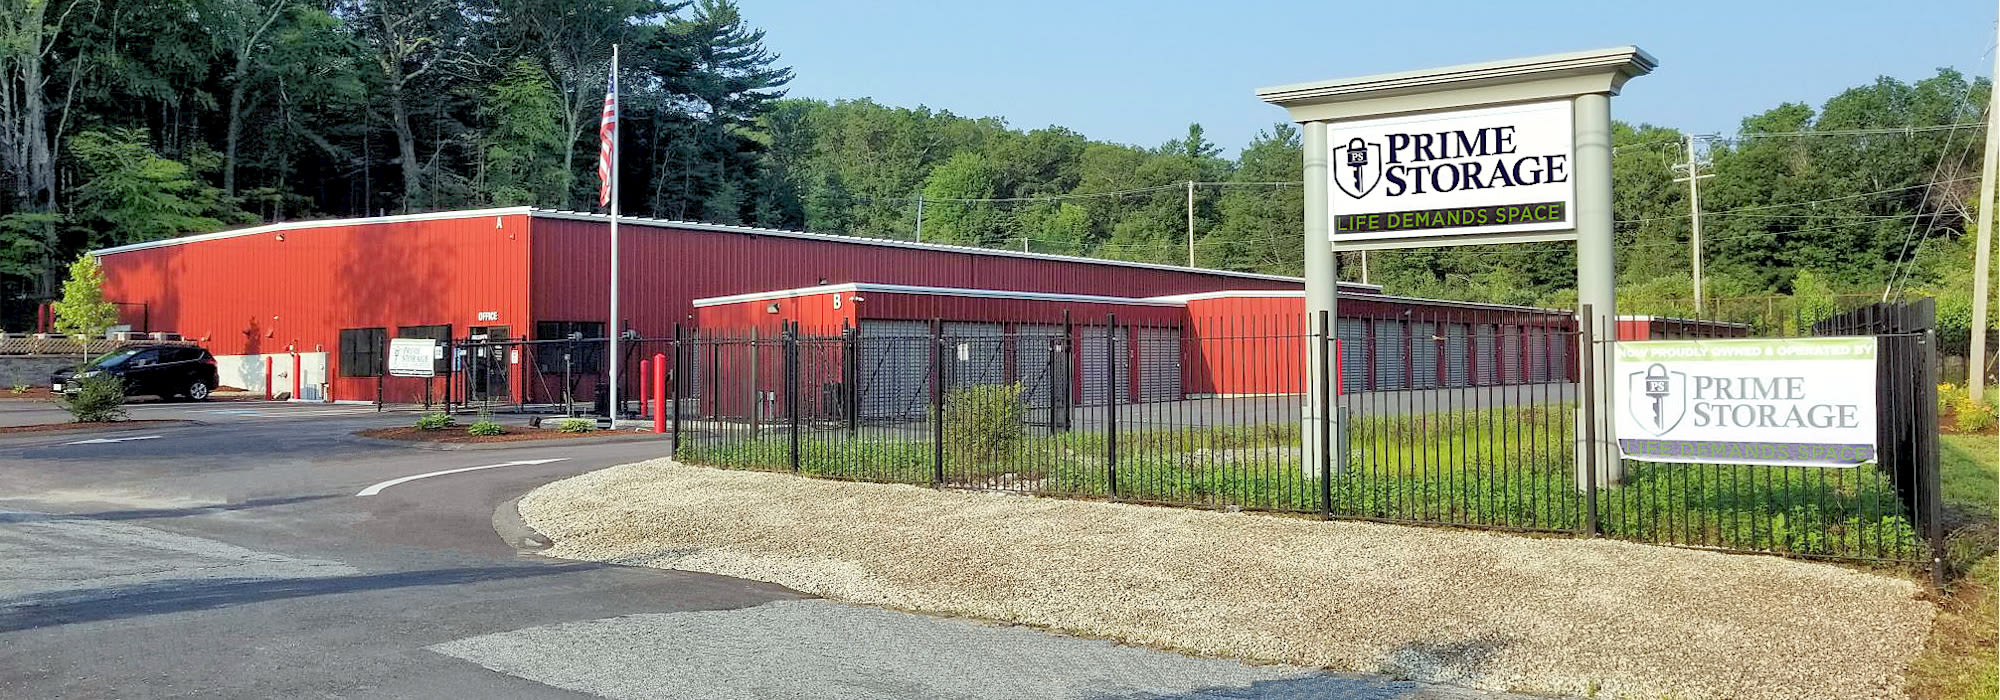 Prime Storage in Whitinsville, MA